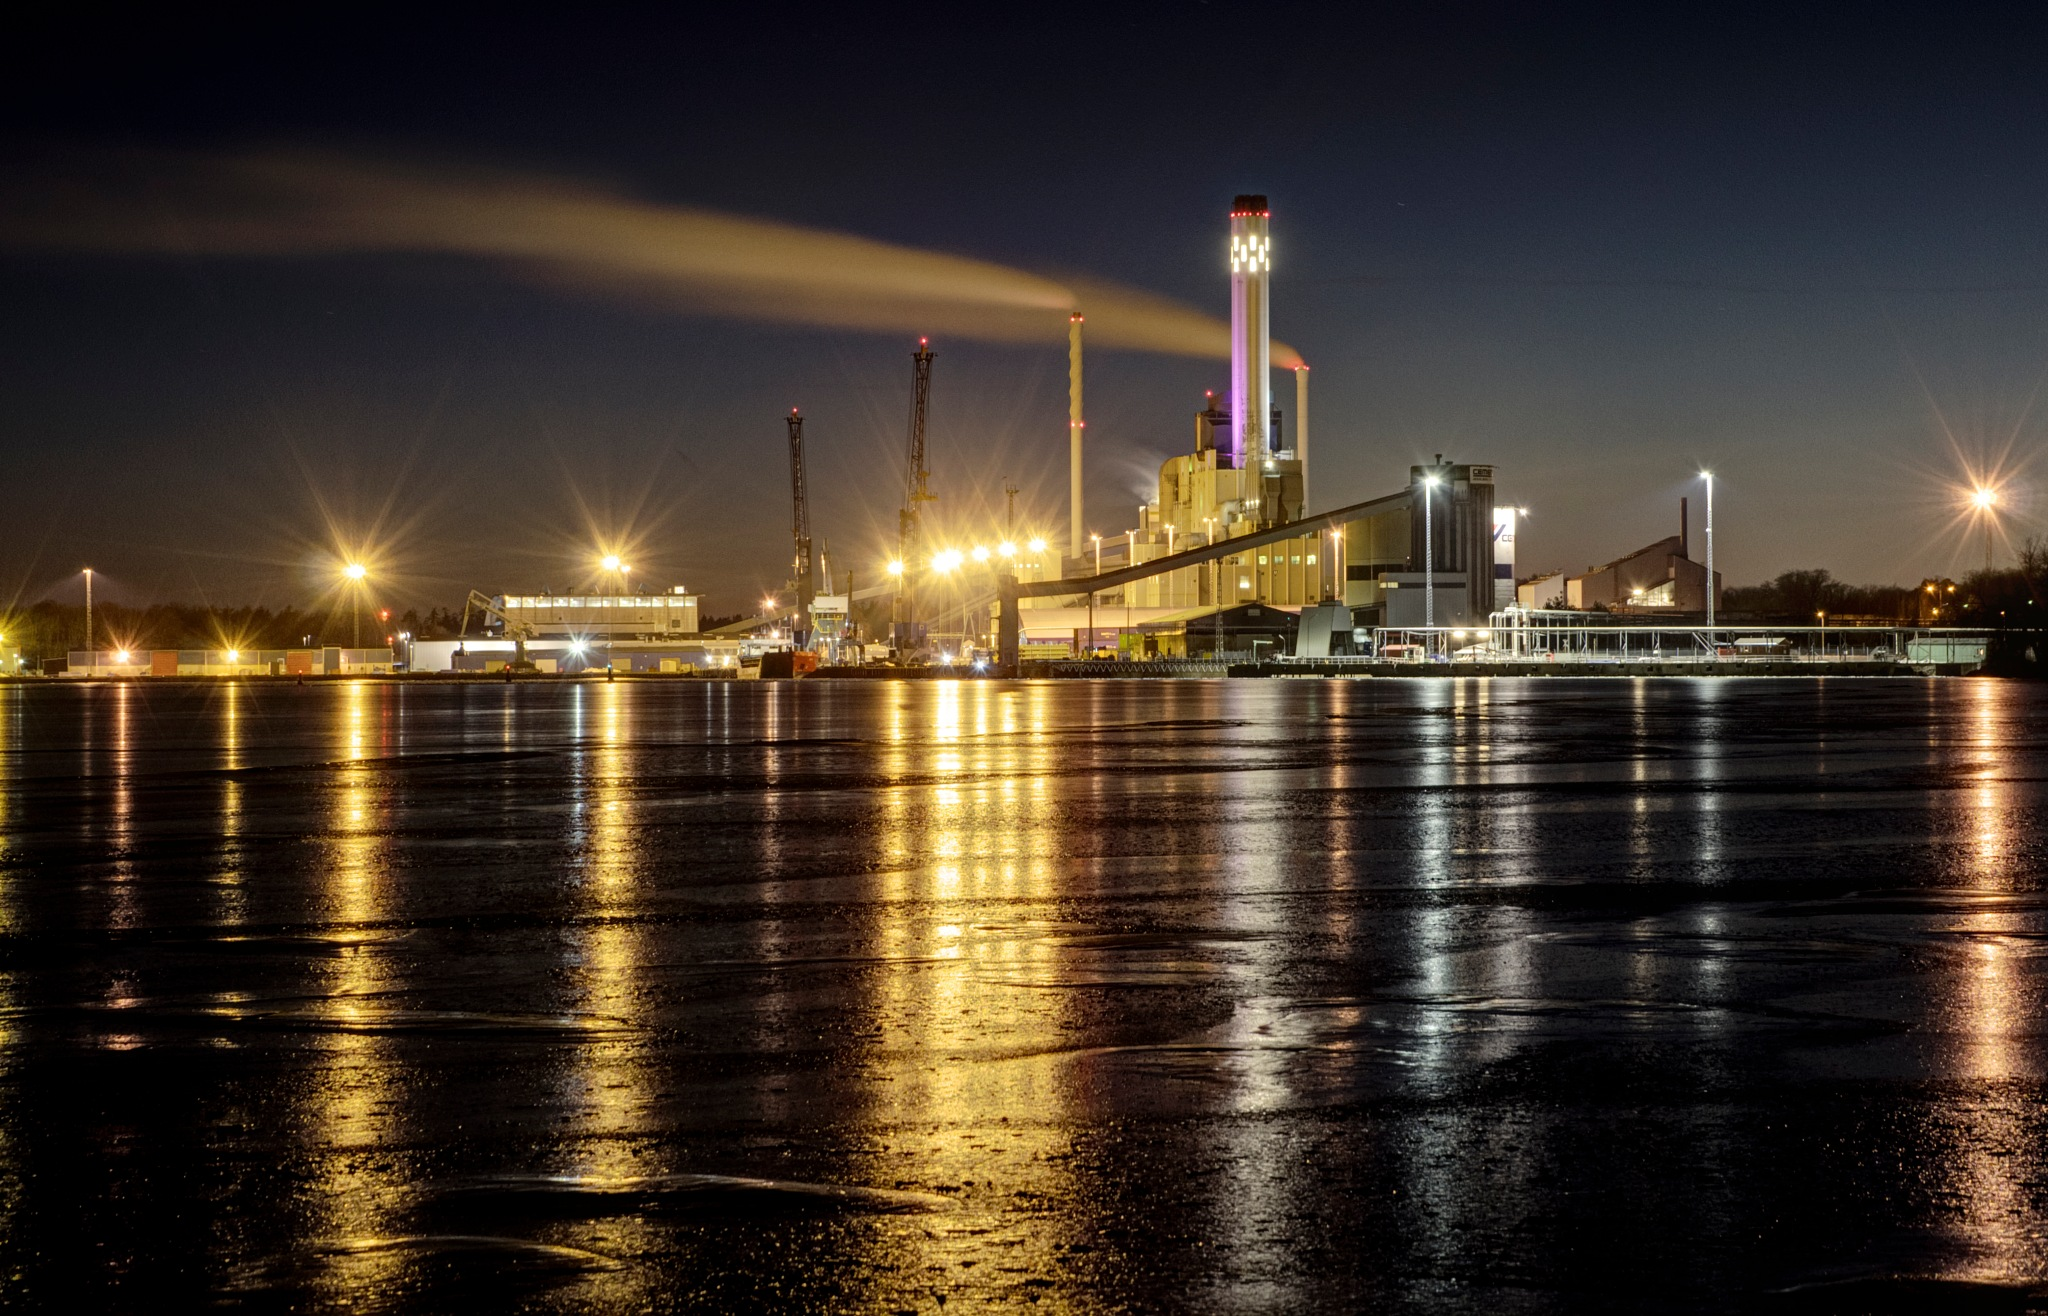 Thermal power station by night by Alexander Arntsen